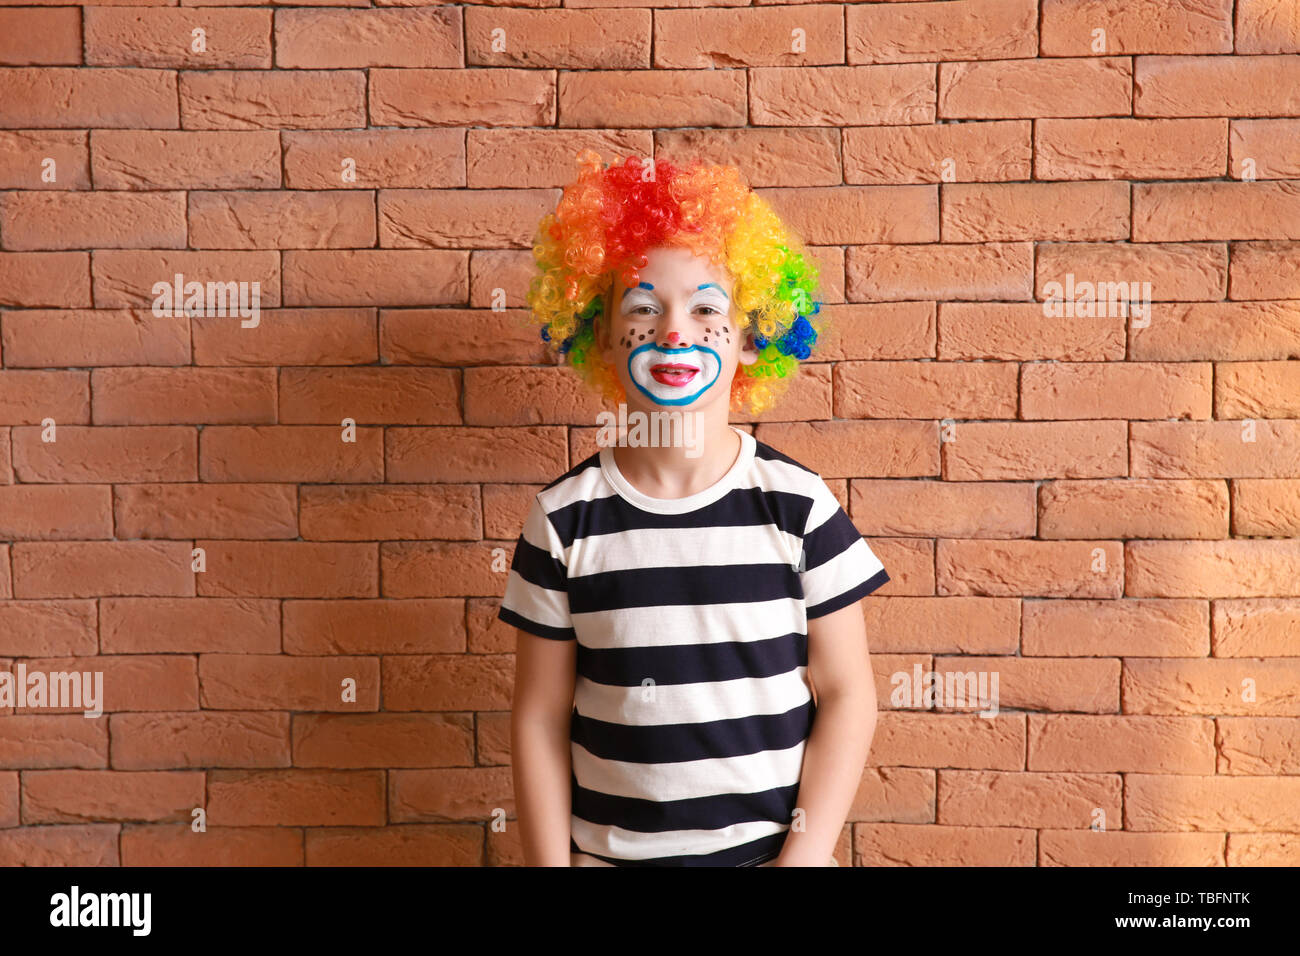 Clown Schminken Suess Clown Makeup Stock Photos Clown Makeup Stock Images Alamy